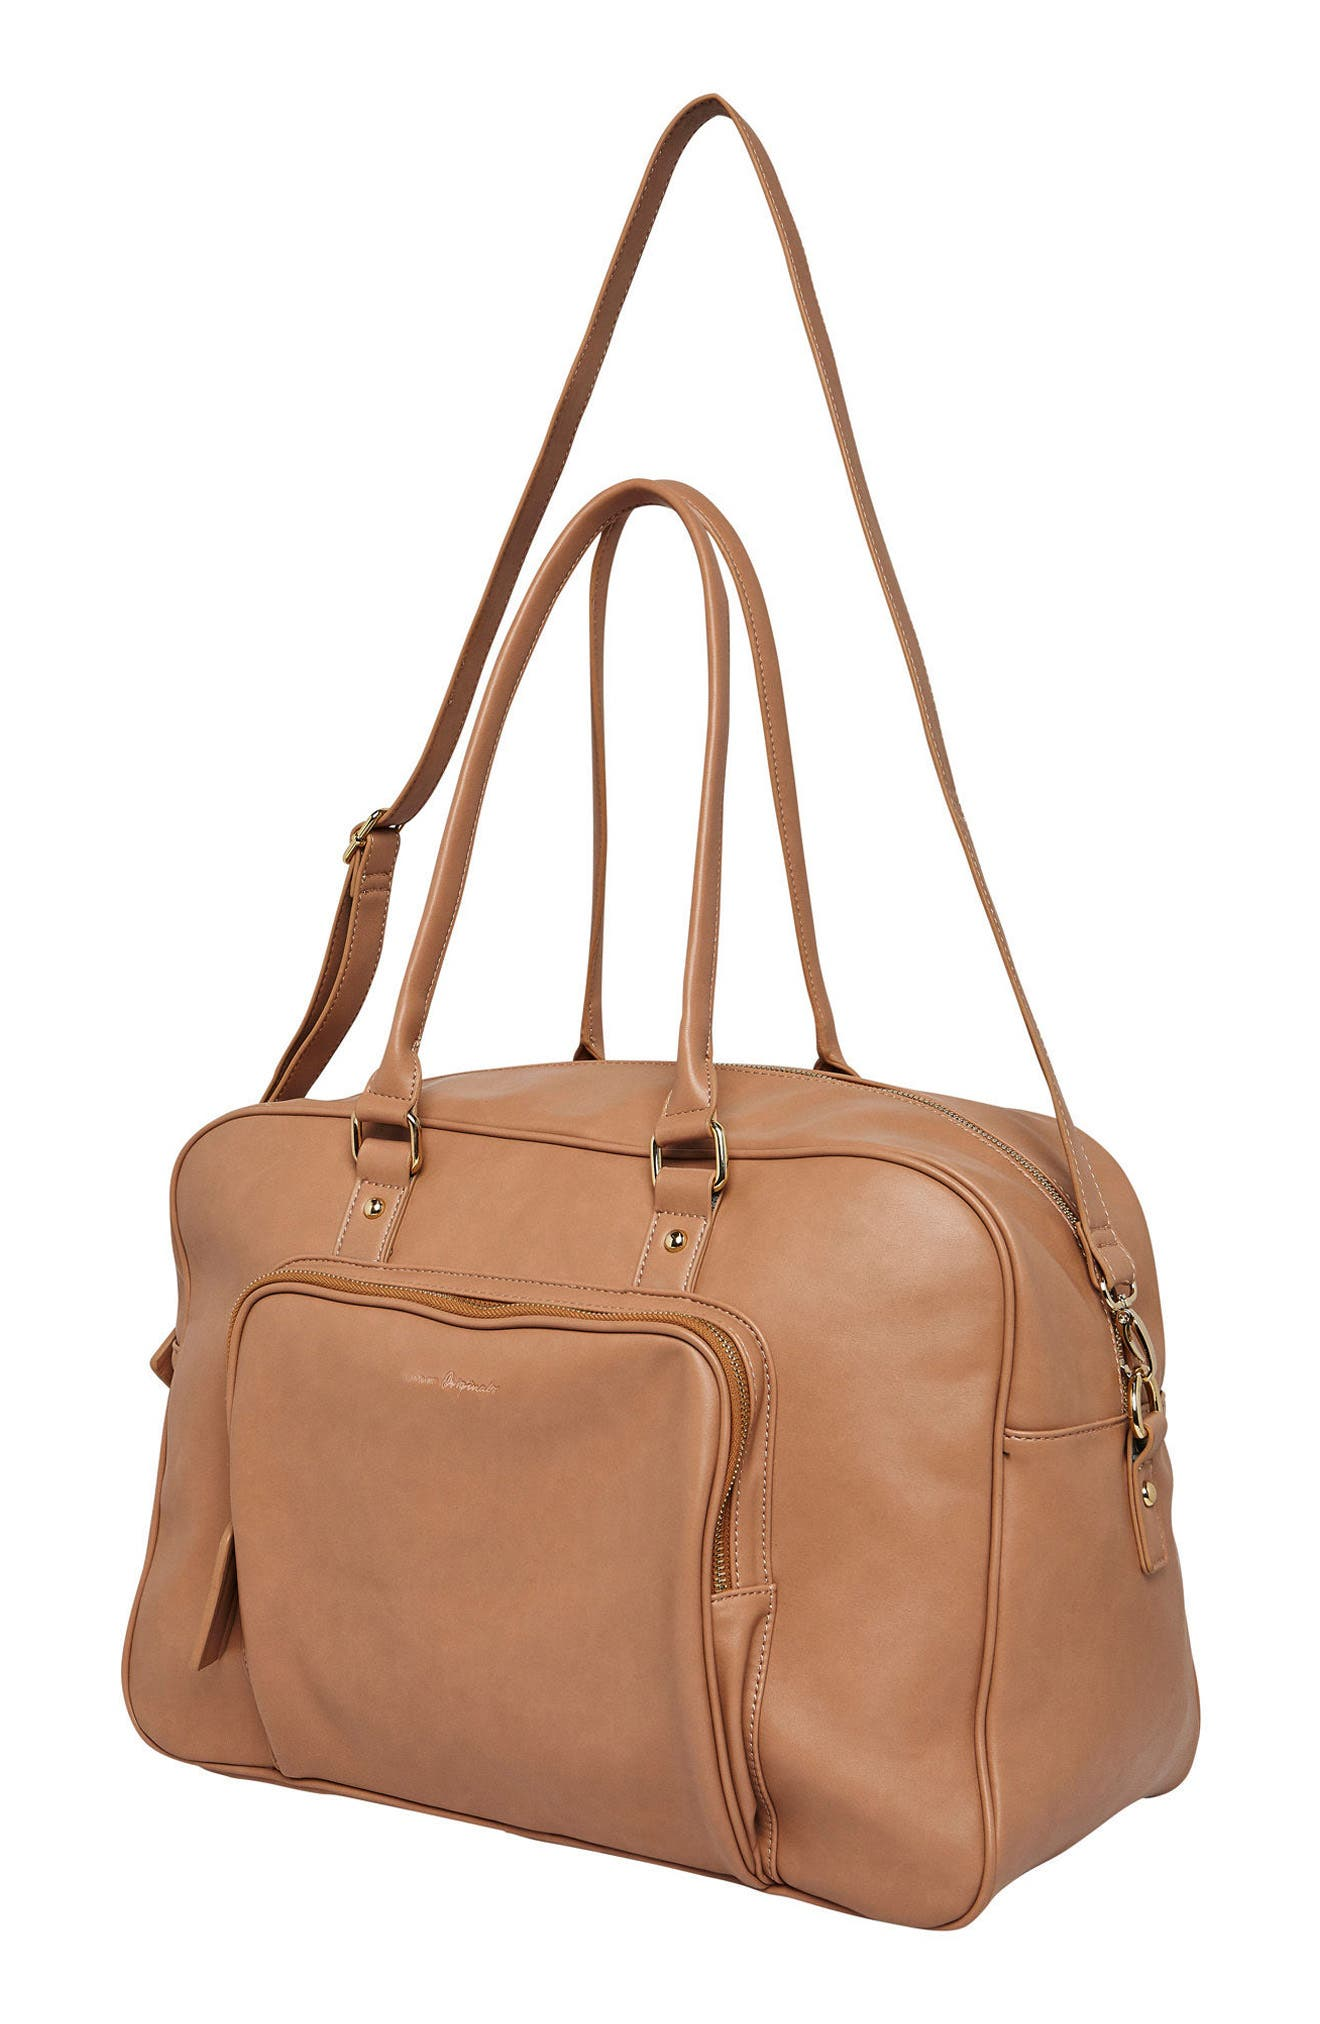 A Million Reasons Vegan Leather Tote,                             Alternate thumbnail 2, color,                             Nude